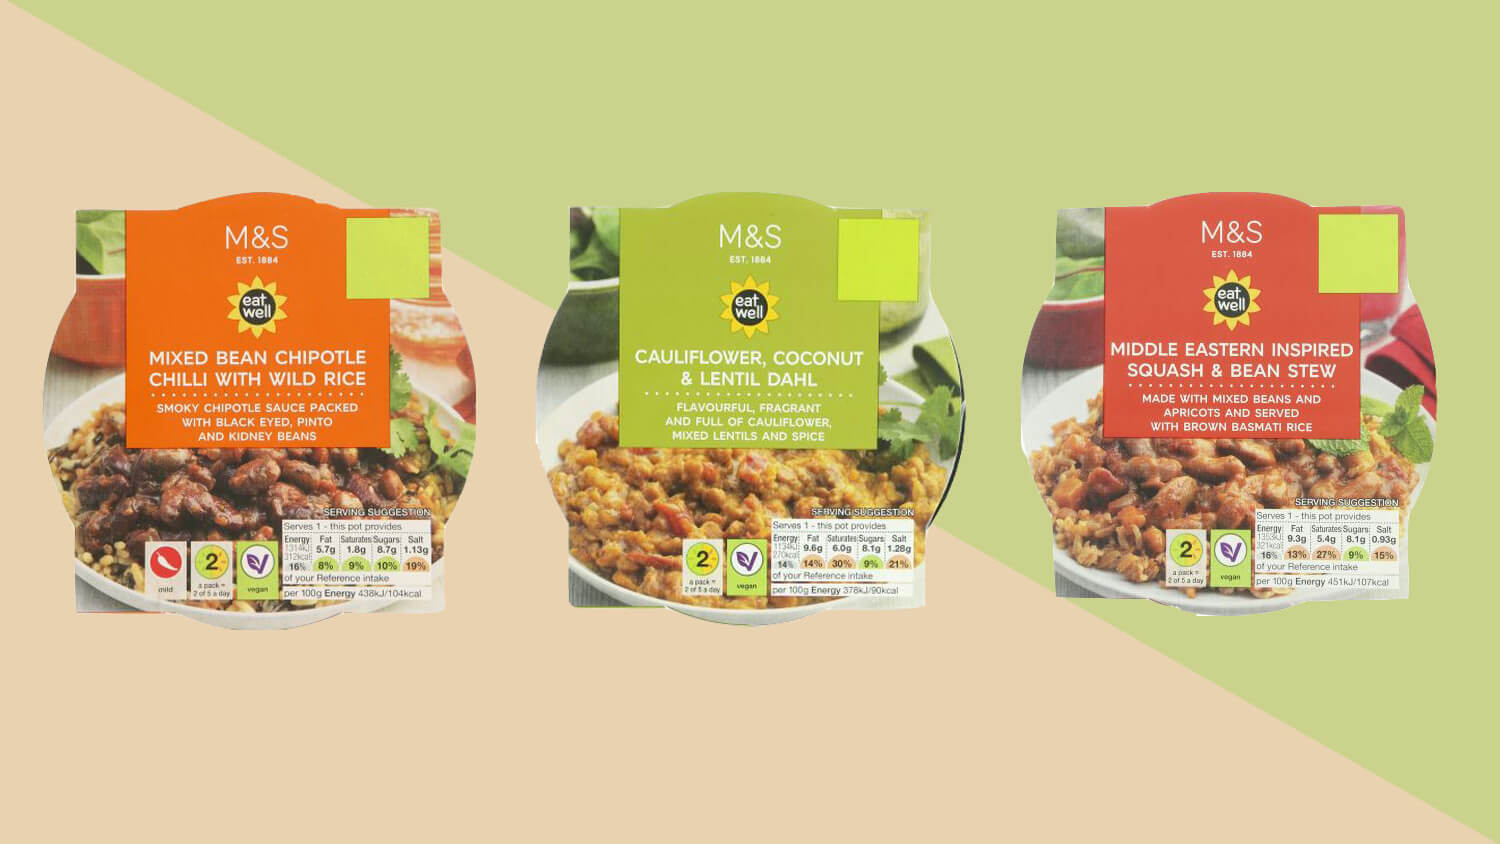 Marks & Spencer's New Vegan Range Includes Coconut Dahl, Middle Eastern Stew, and Chipotle Chilli With Wild Rice